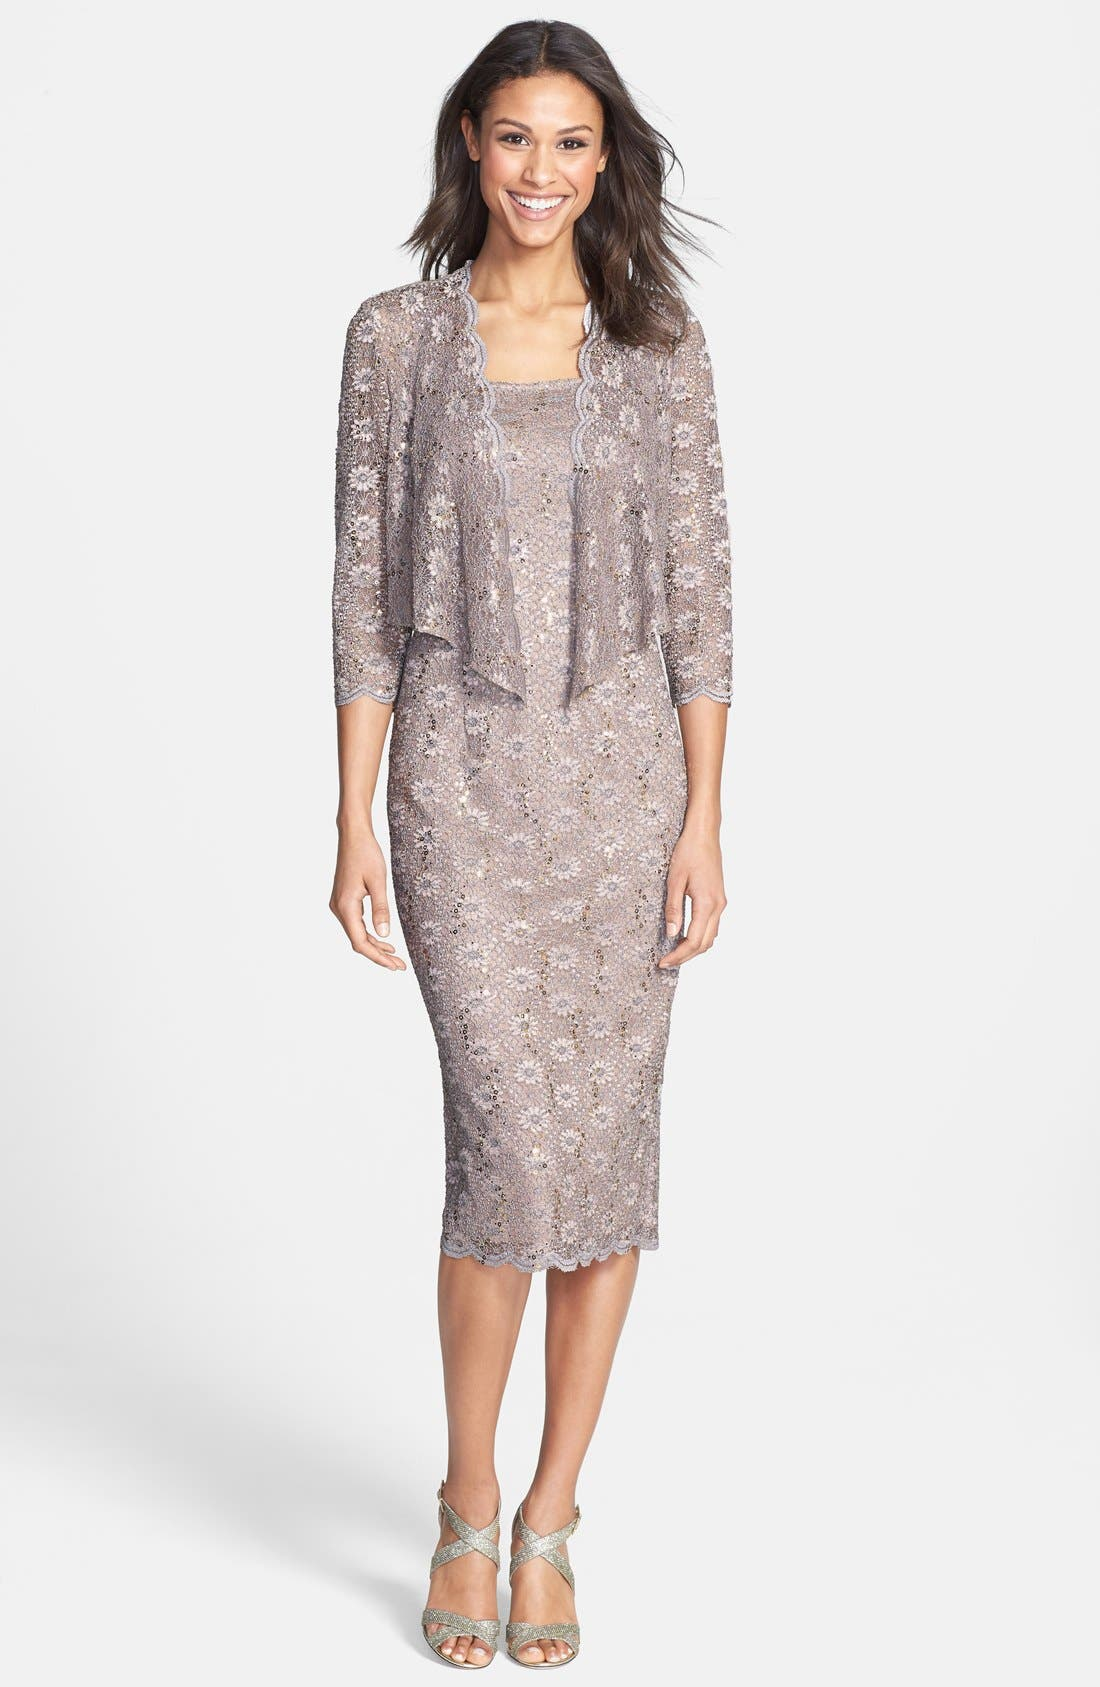 Petite Lace Sequined Dress with Matching Jacket Famous Maker isn't a brand, think of it as a deal so fabulous we can't even reveal the actual label. It's just one of the many ways we work hard to bring you top designers and brands at amazing values.